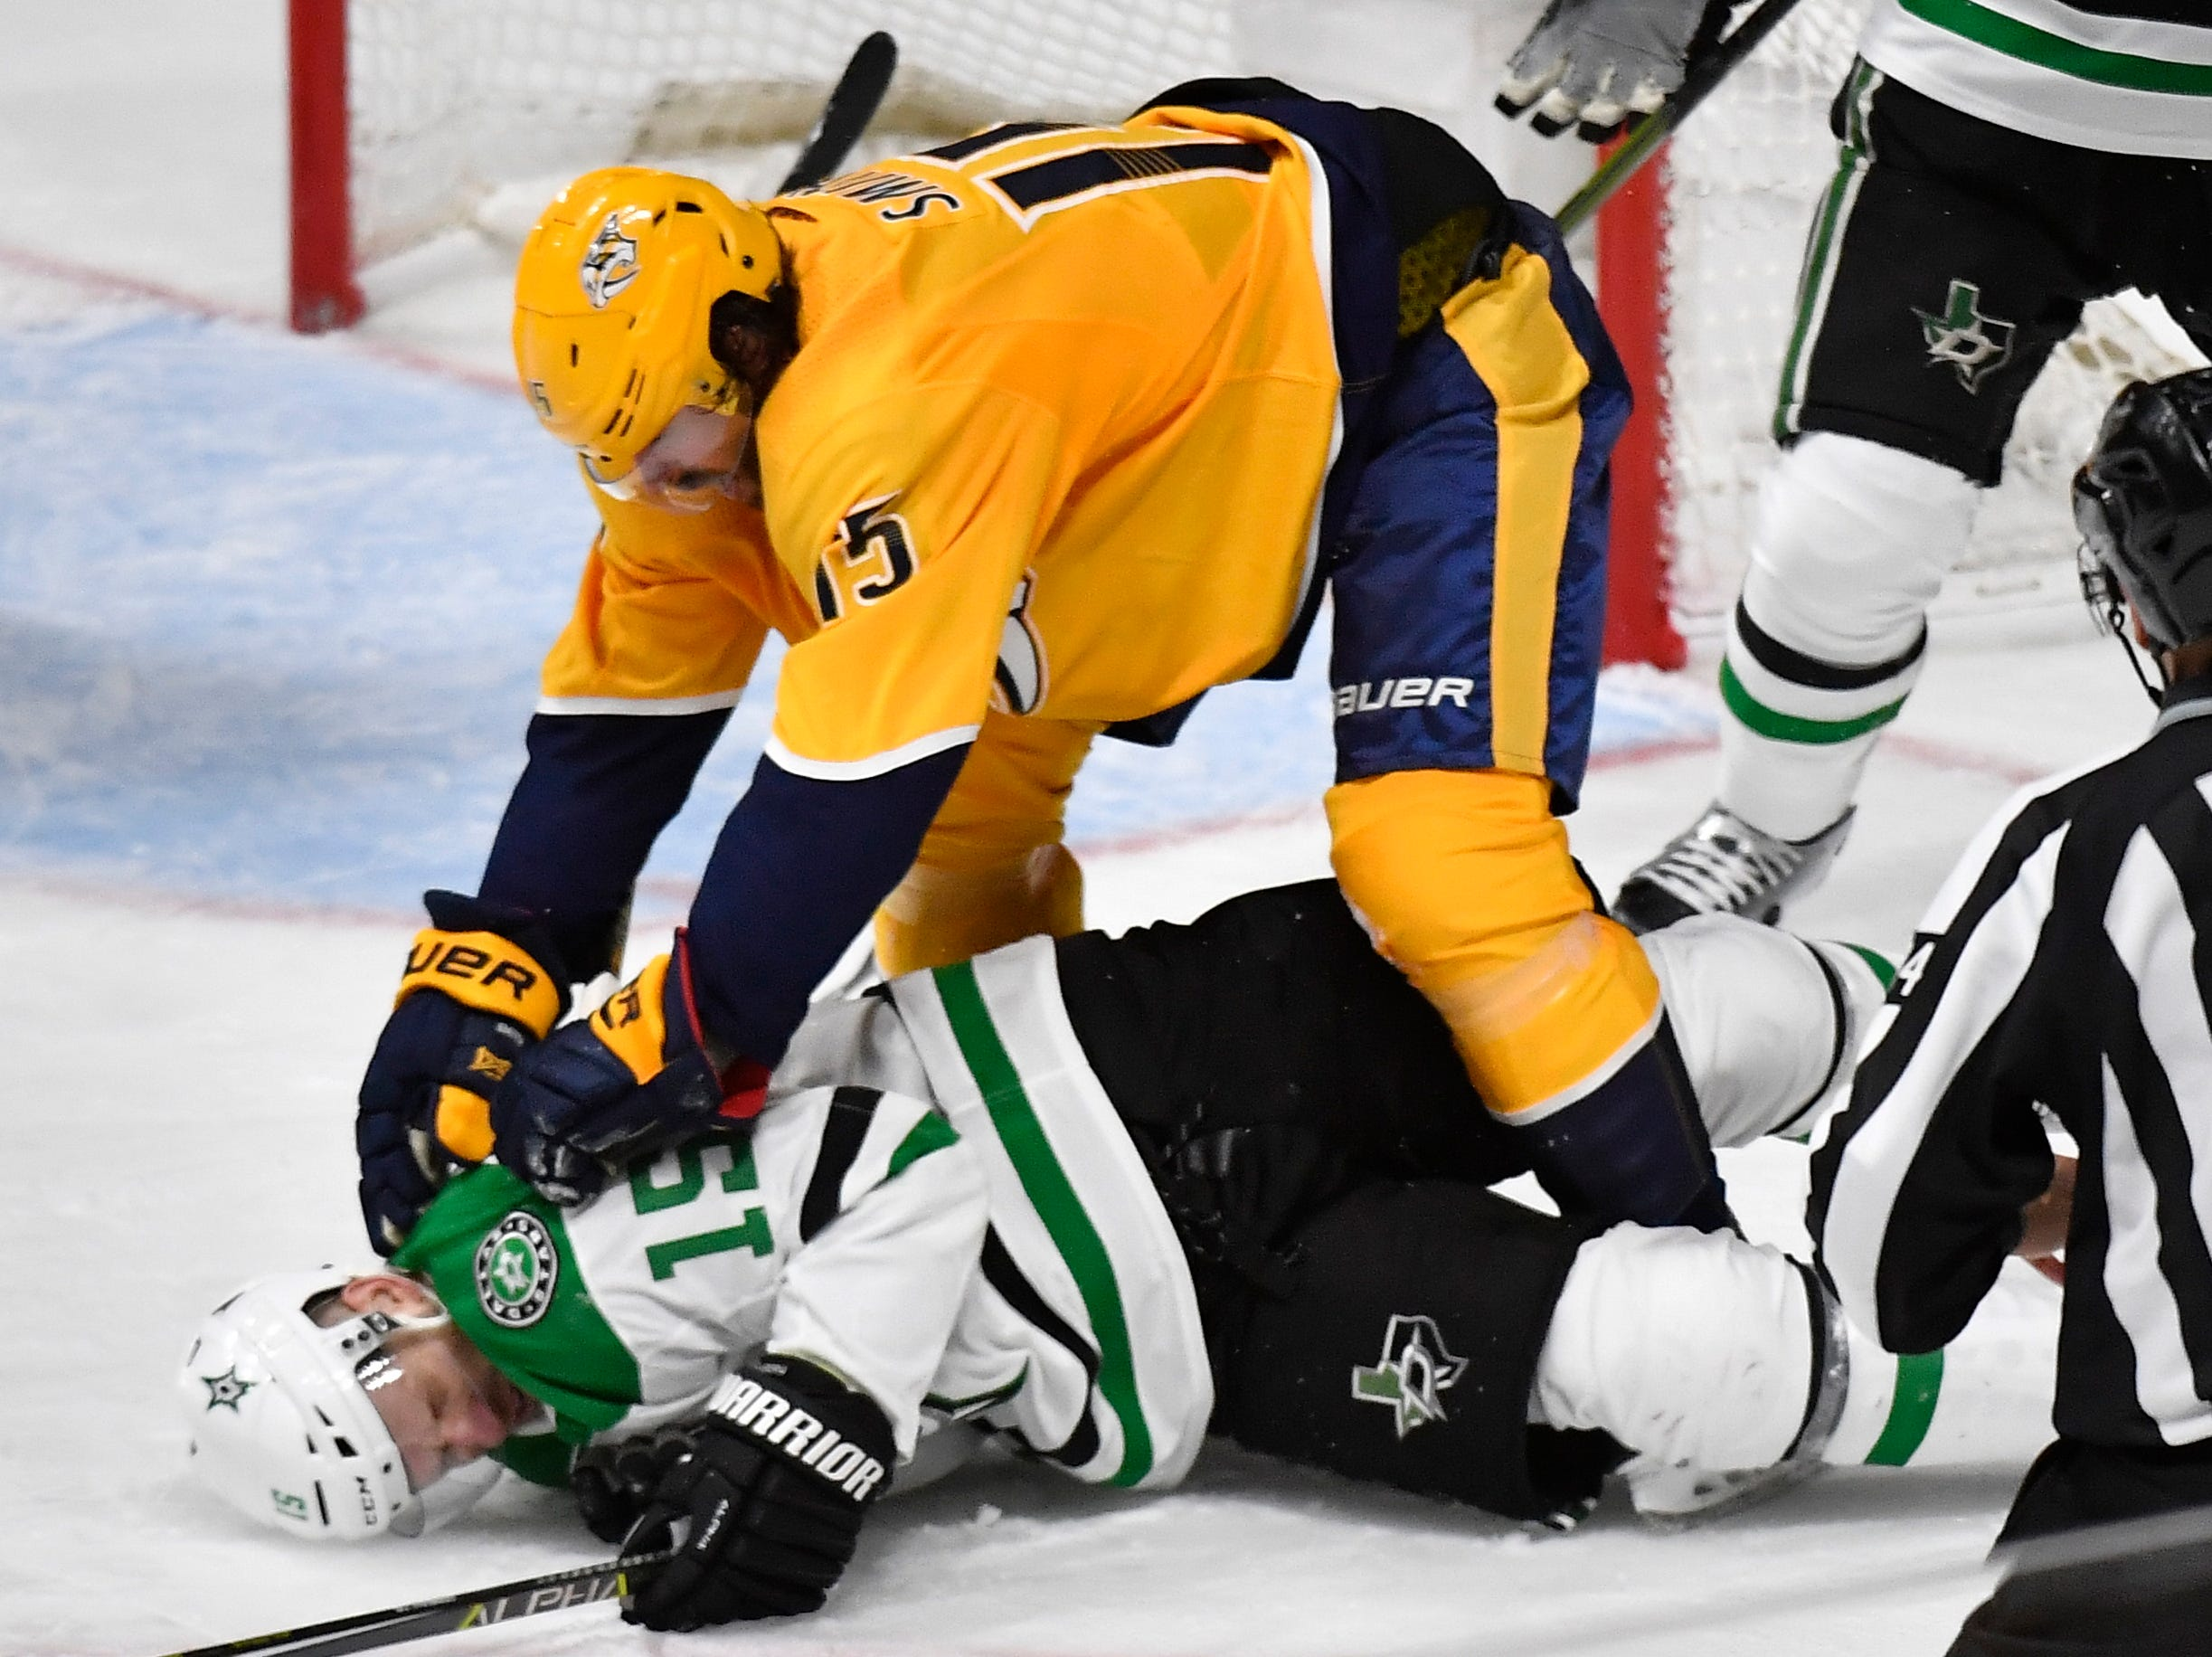 Nashville Predators right wing Craig Smith (15) pounds Dallas Stars left wing Blake Comeau (15) during the third period of the divisional semifinal game at Bridgestone Arena in Nashville, Tenn., Saturday, April 13, 2019.